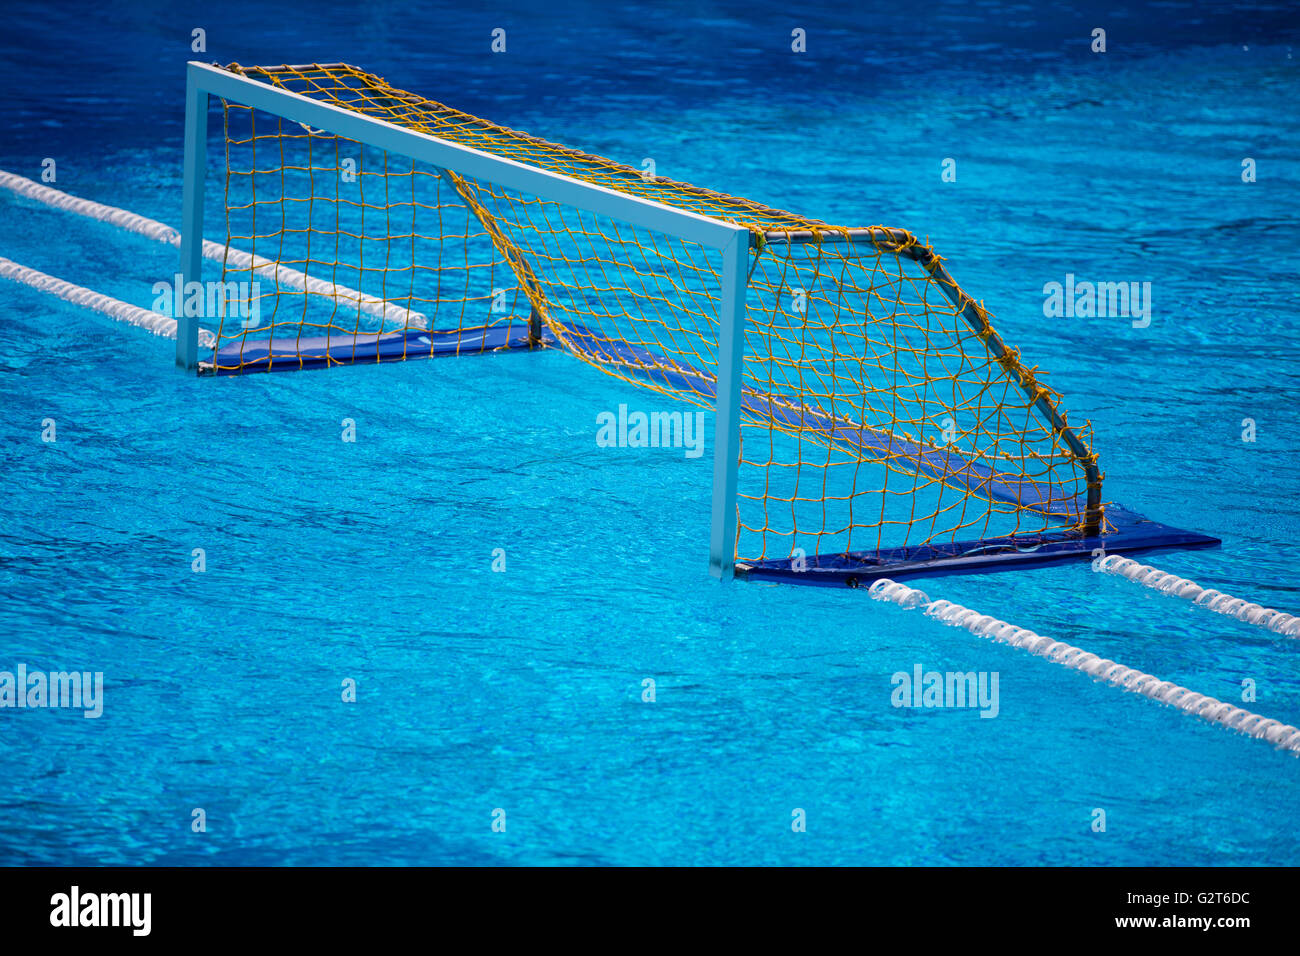 water polo goal gate in olympic swimming pool stock photo olympic swimming pool background